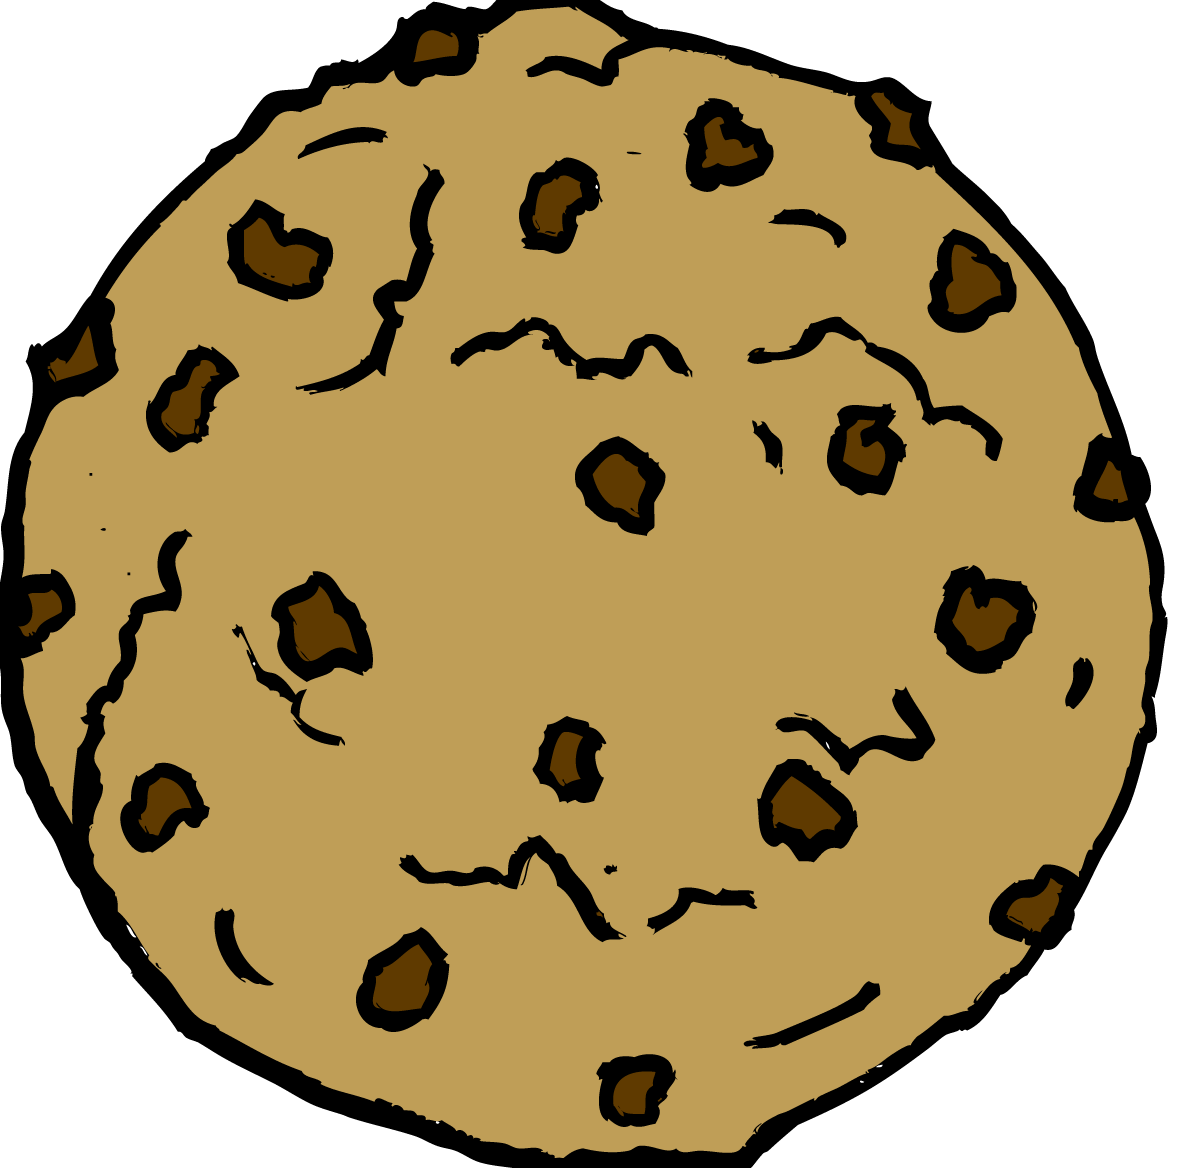 Cookie Coloring Pages | Free download best Cookie Coloring Pages on ...